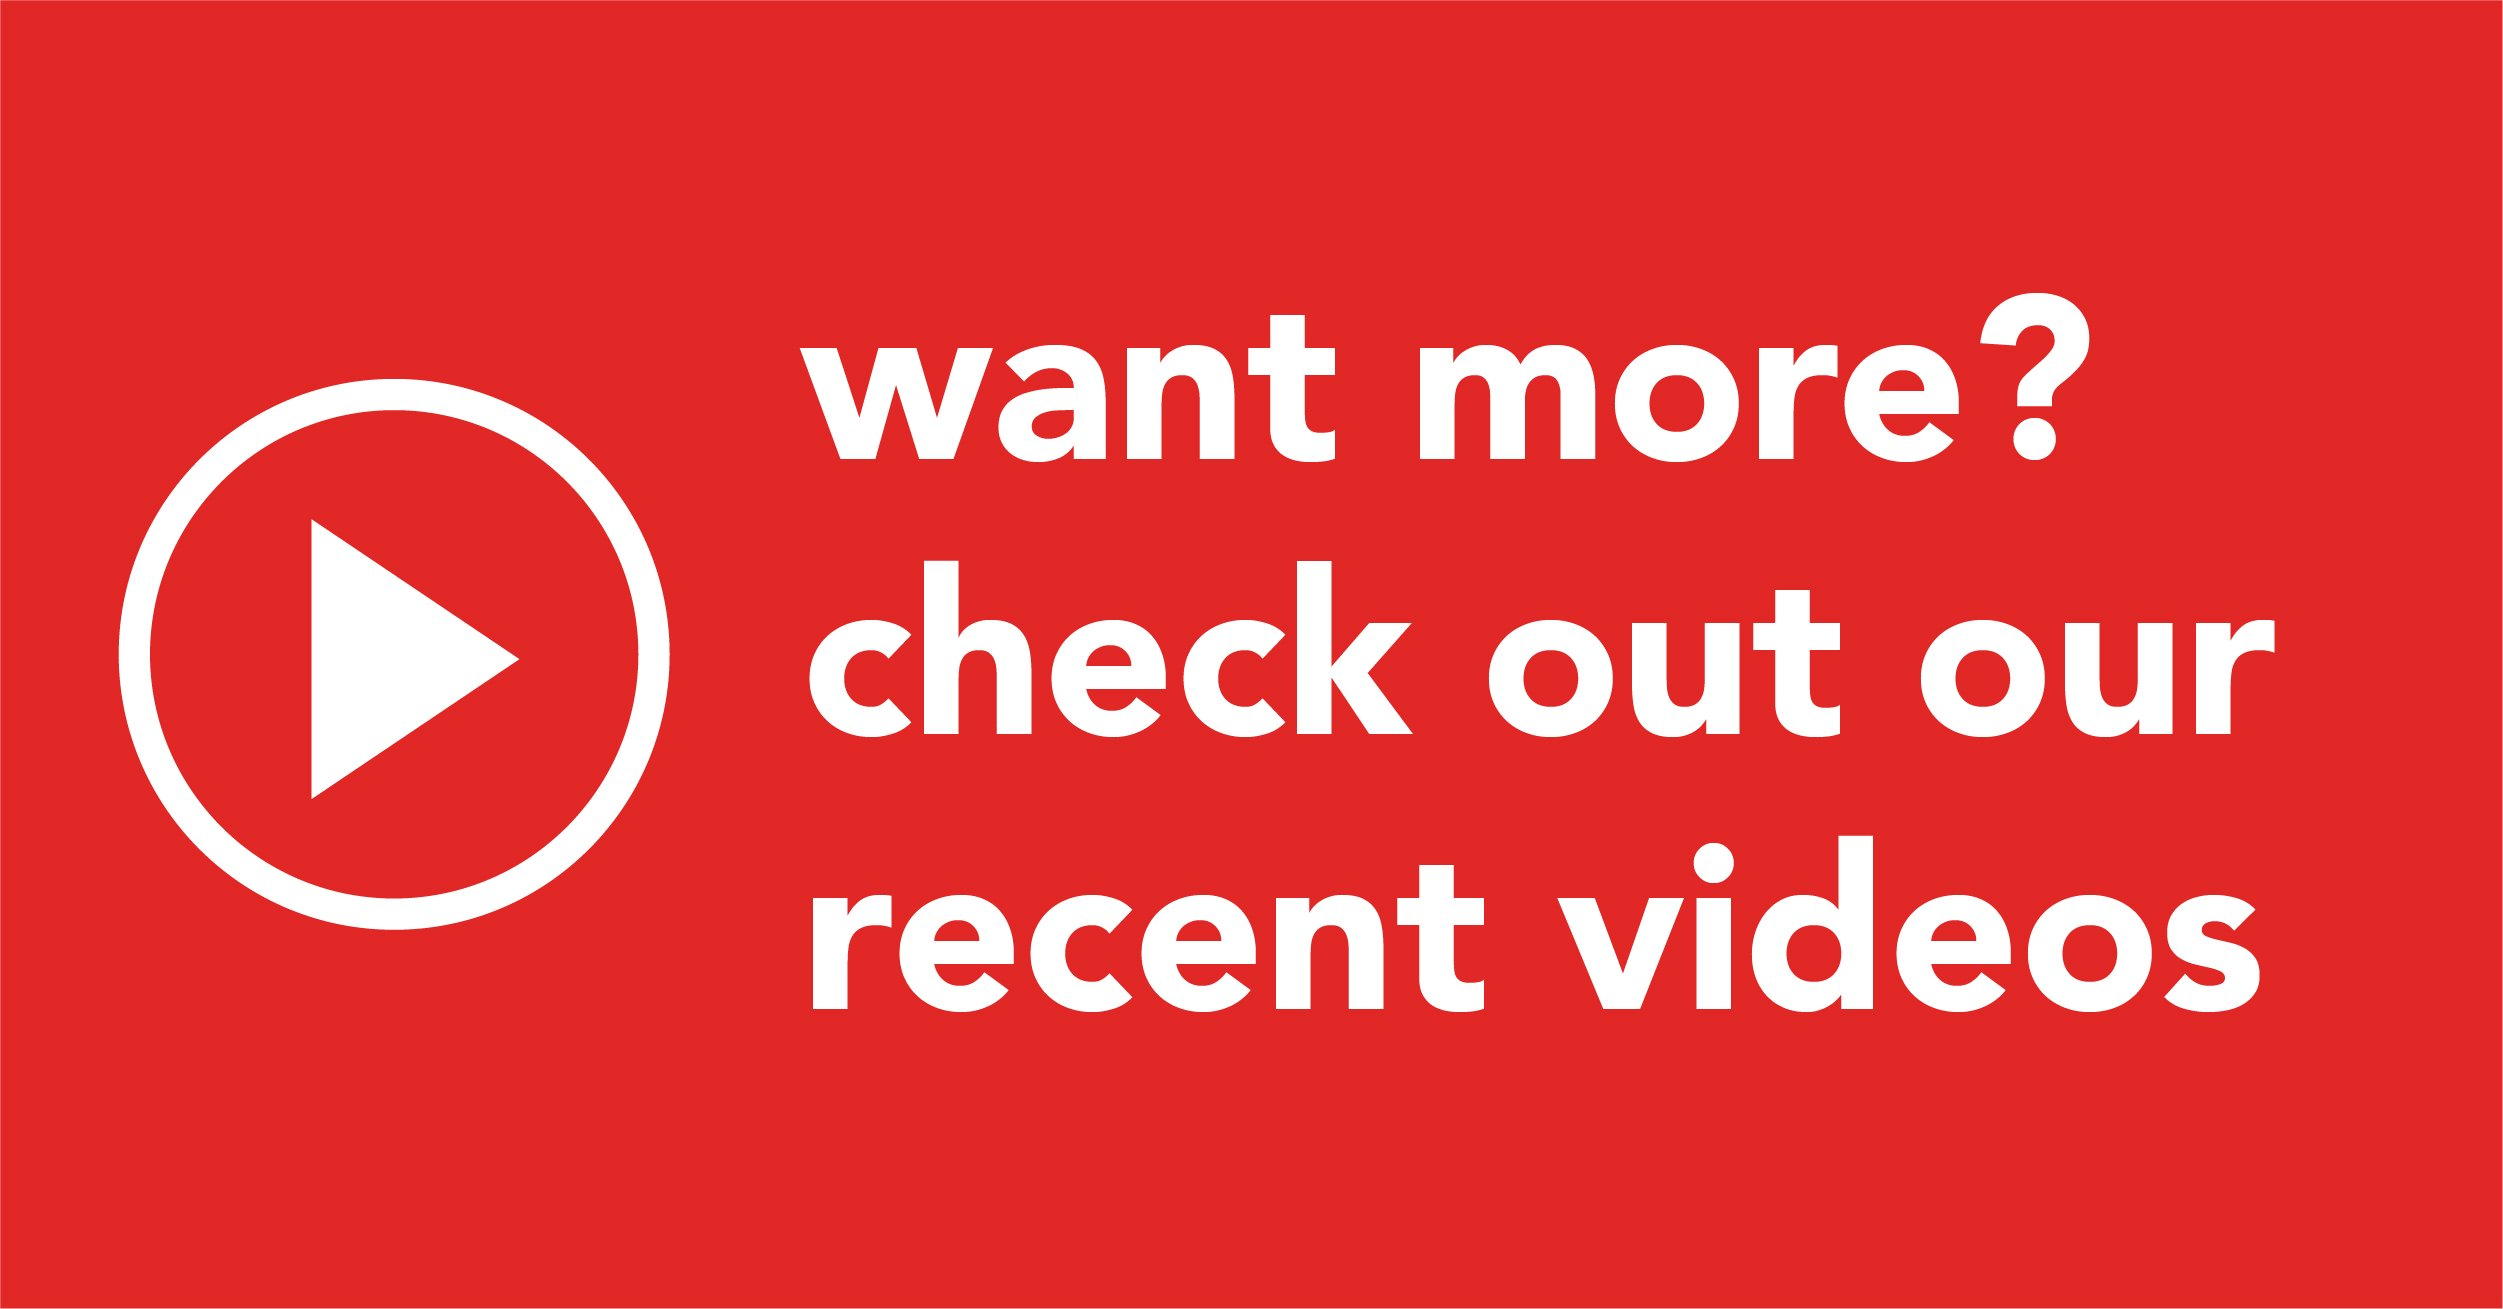 Want More? Check Out Our Recent Videos